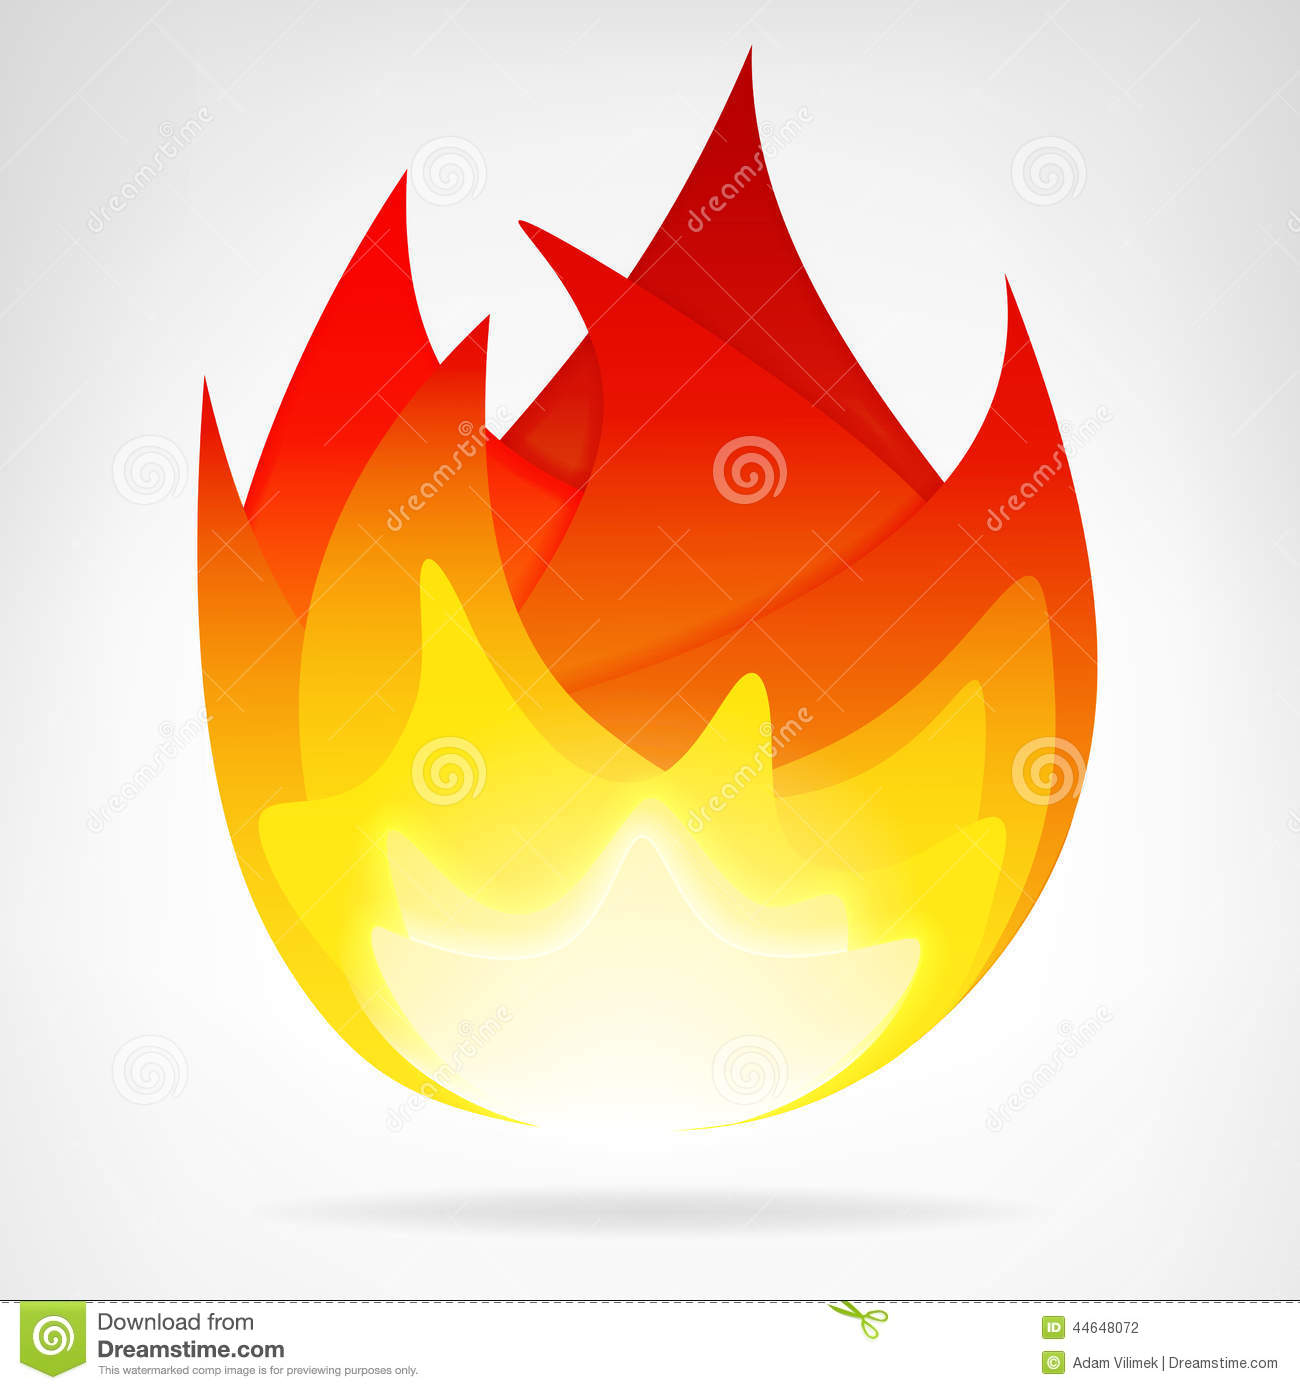 Fire Flame Energy Isolated Vector Stock Vector - Image: 44648072